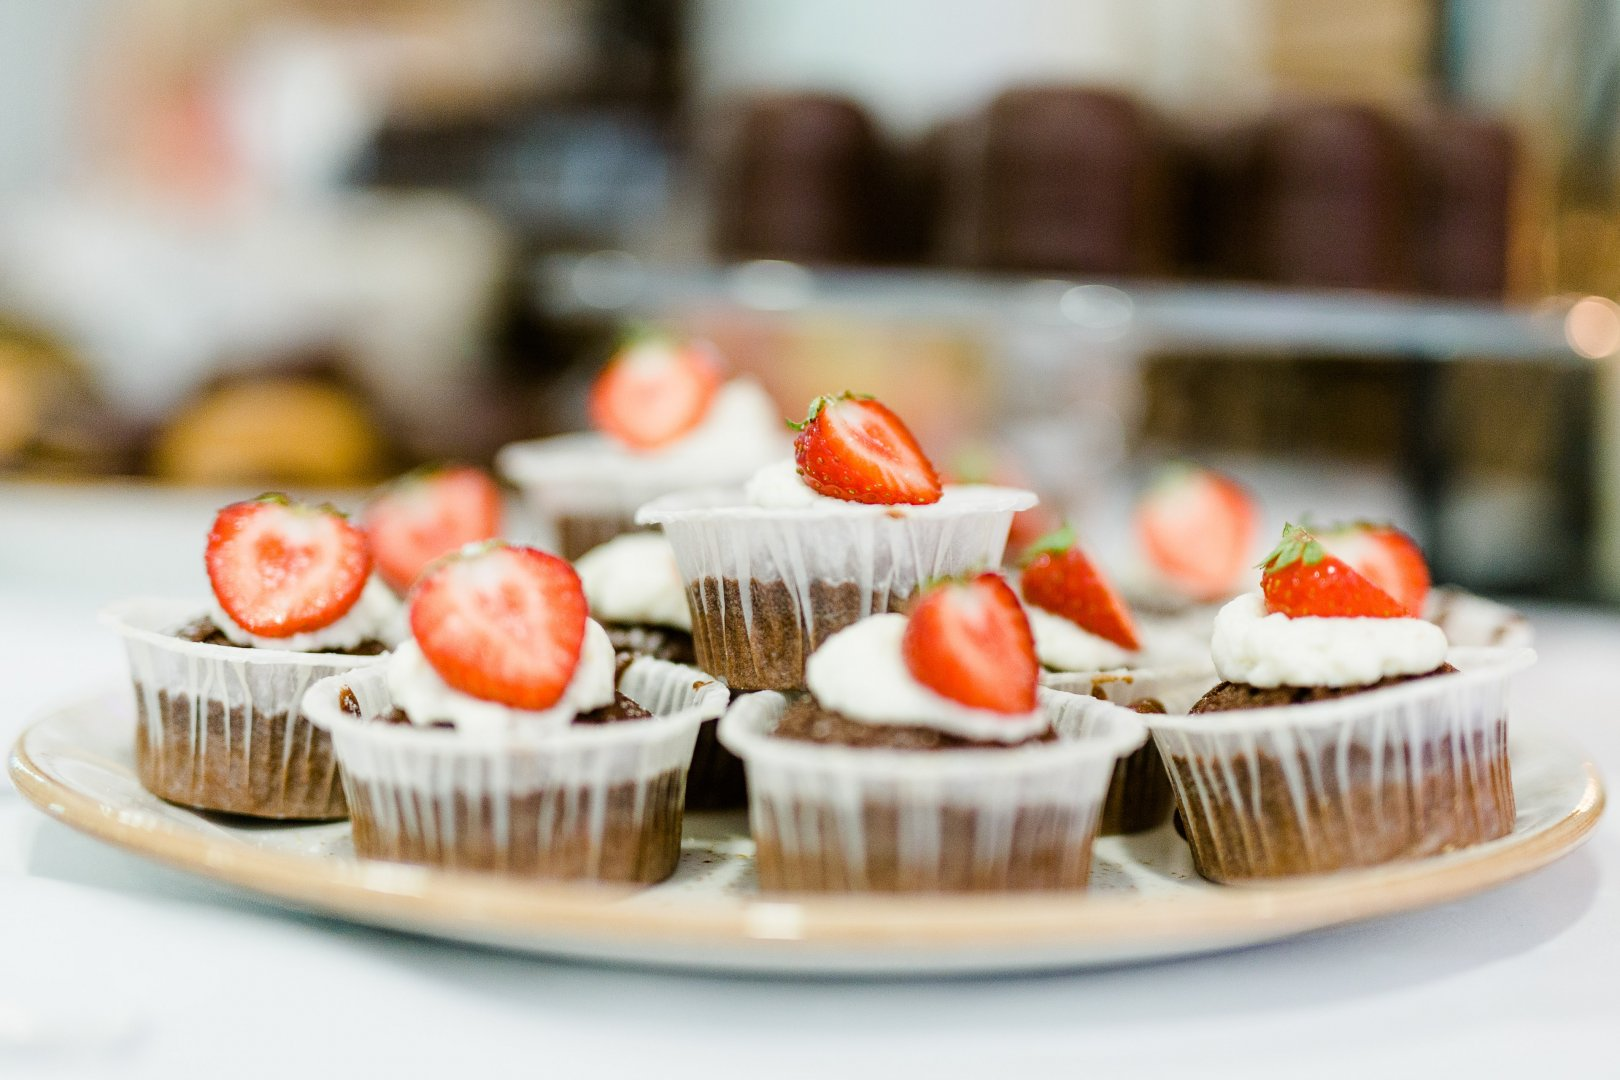 Food Cupcake Dish Cuisine Dessert Sweetness Baking Ingredient Icing Cream cheese Finger food Petit four Brunch Muffin Cake Baked goods Strawberries Recipe Cream Delicacy Strawberry Buttercream À la carte food Produce Canapé Bake sale Hors d'oeuvre Fruit Pâtisserie appetizer